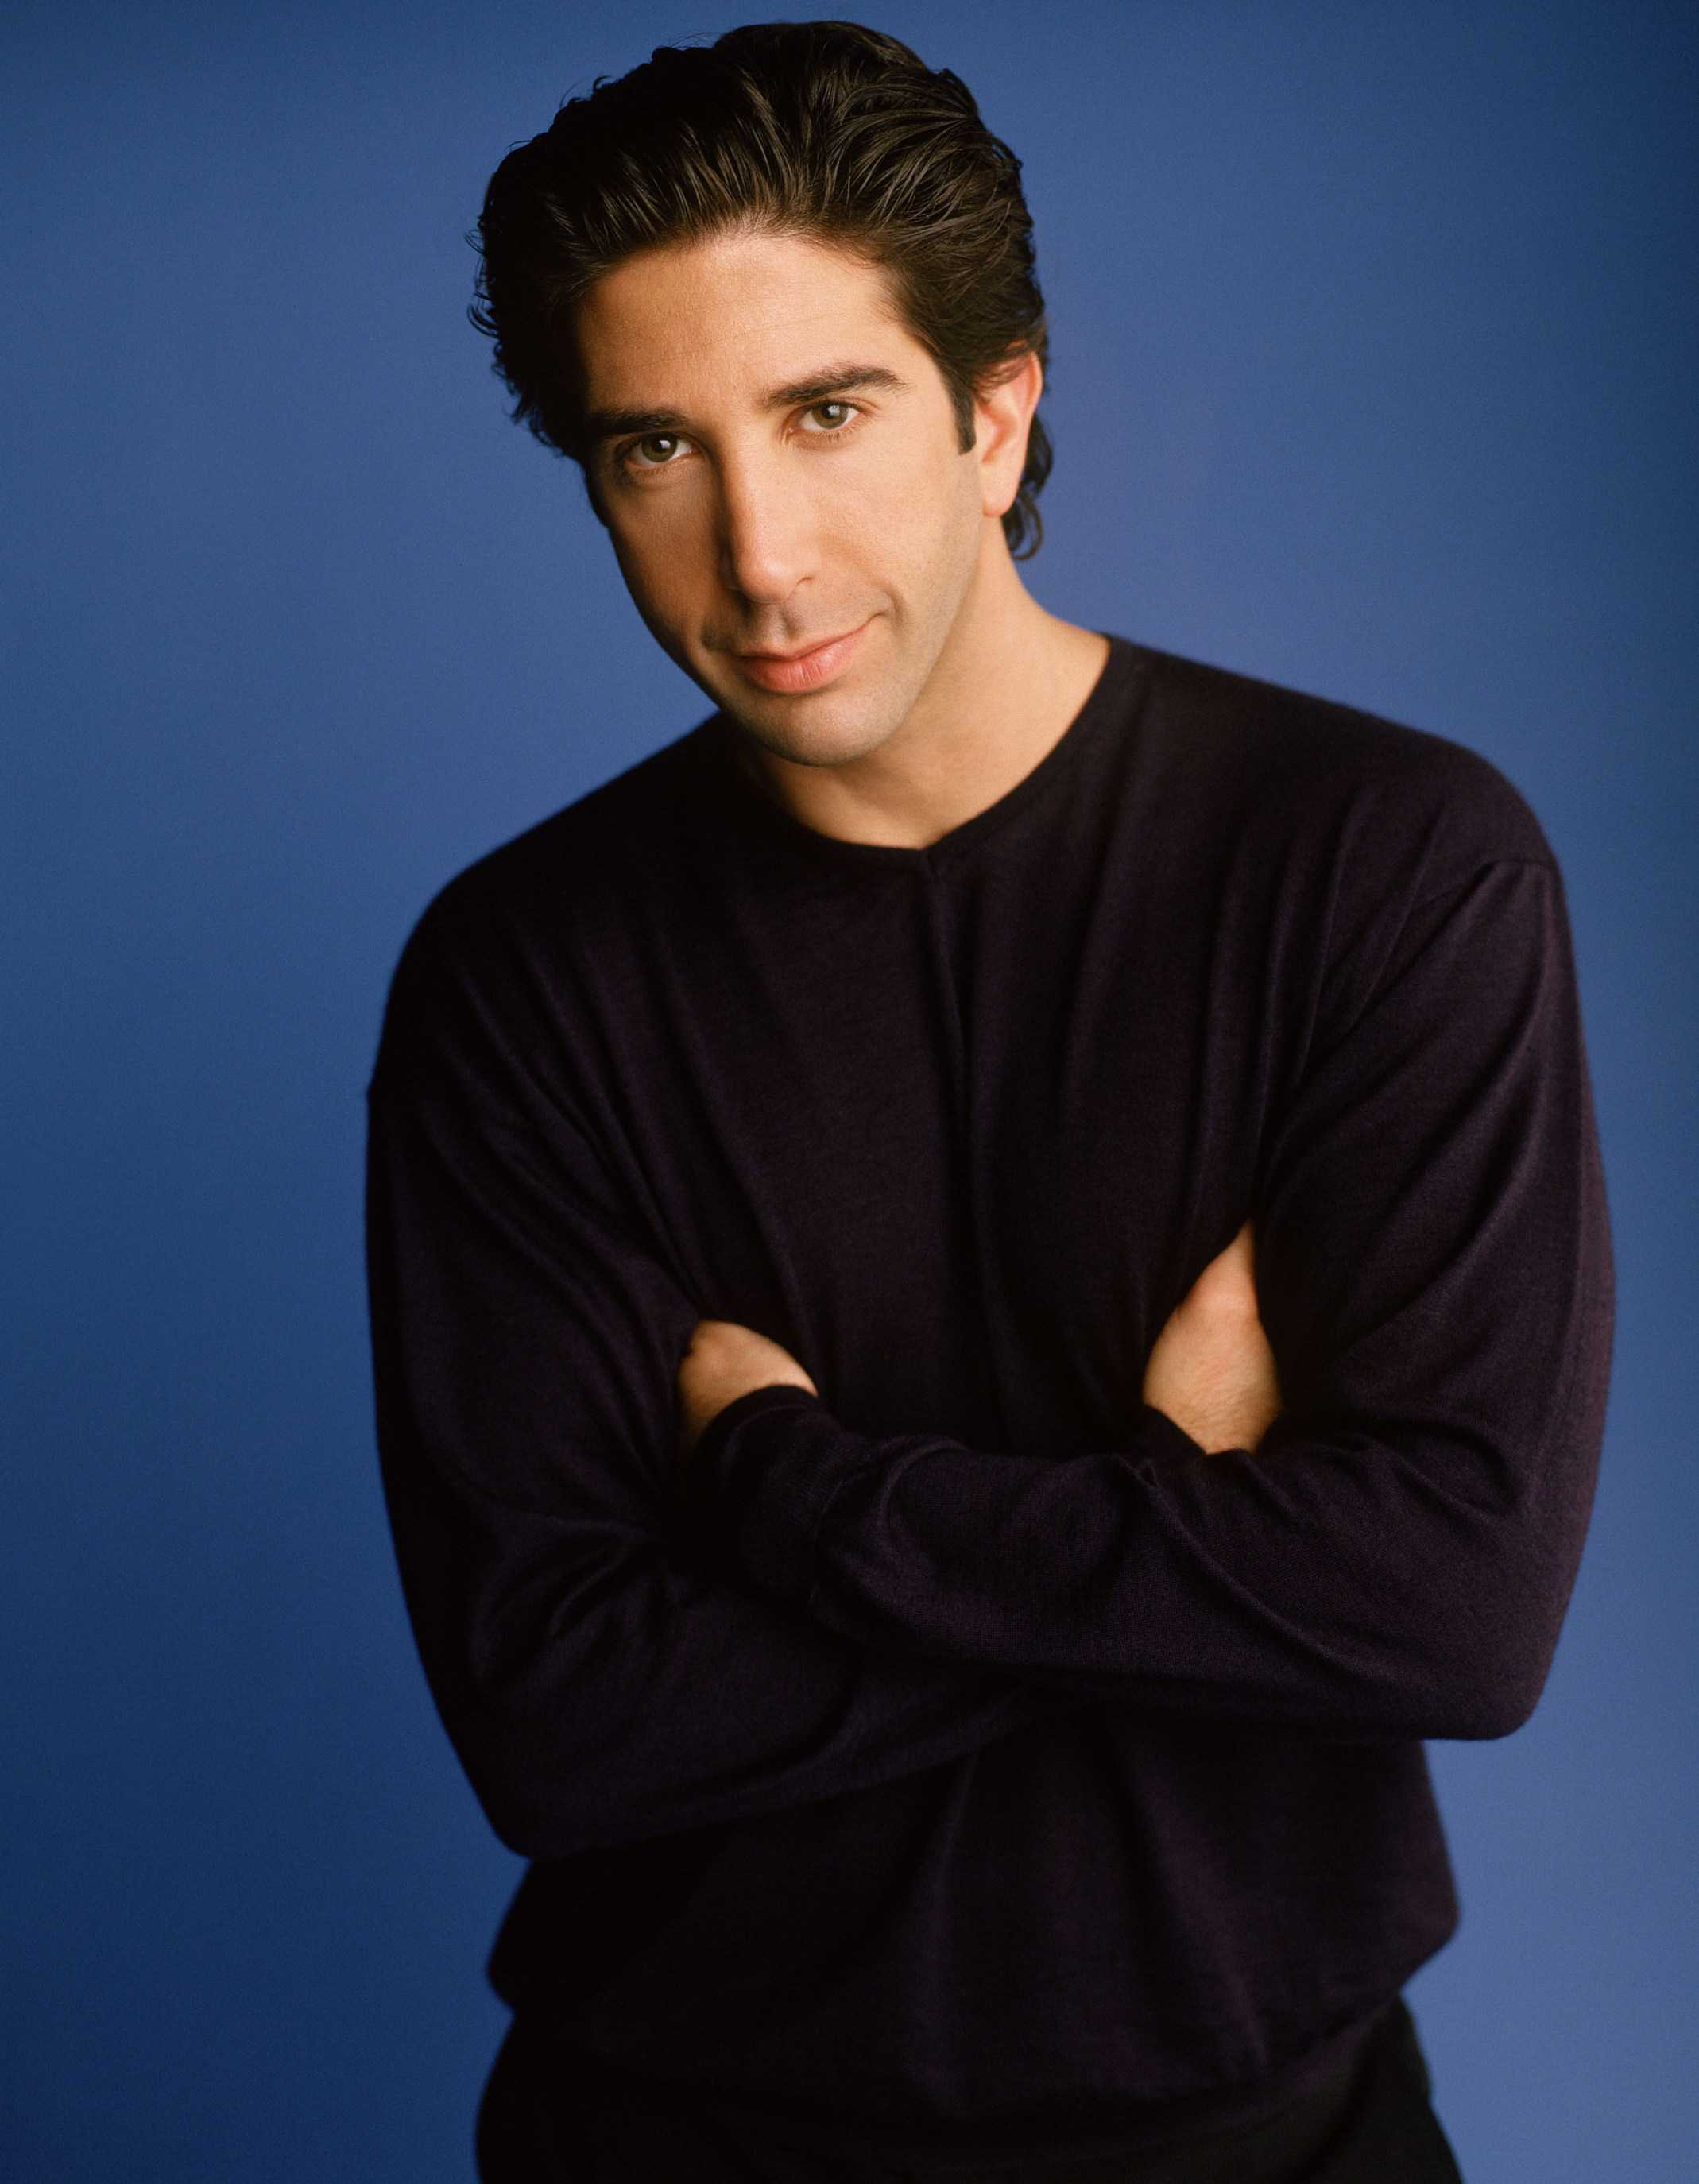 David Schwimmer Famous For